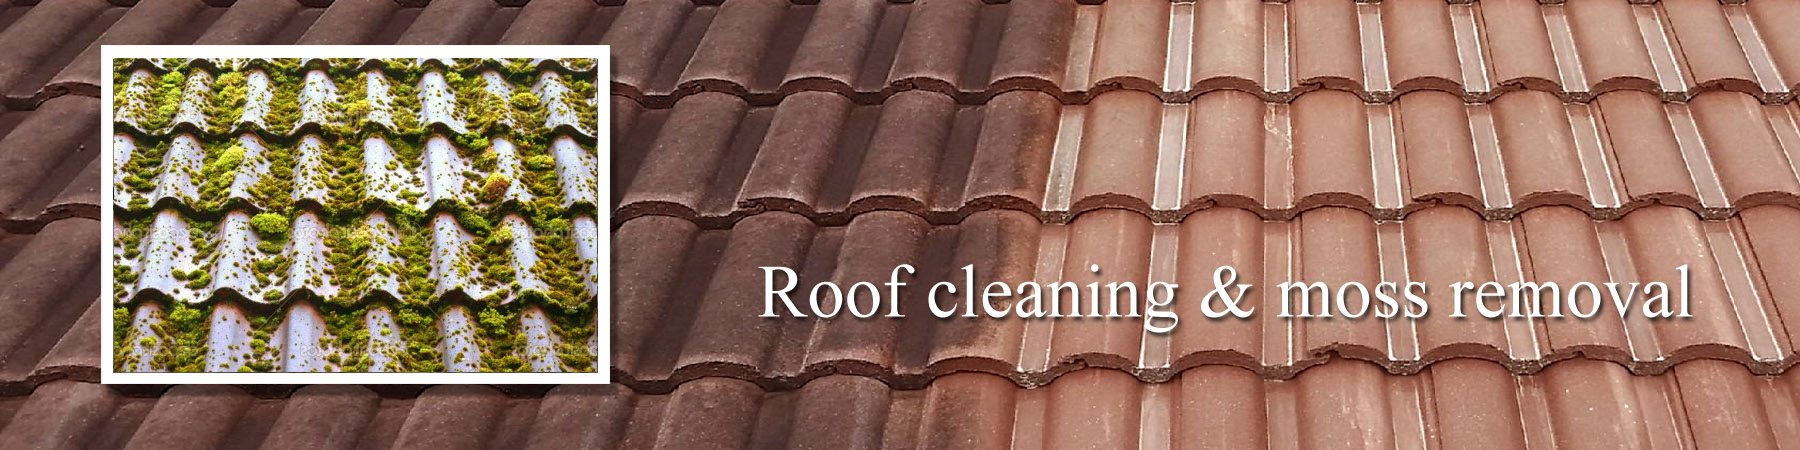 J.R. Roof Cleaning Orpington roof moss removal repairs & coating J R Cleaning